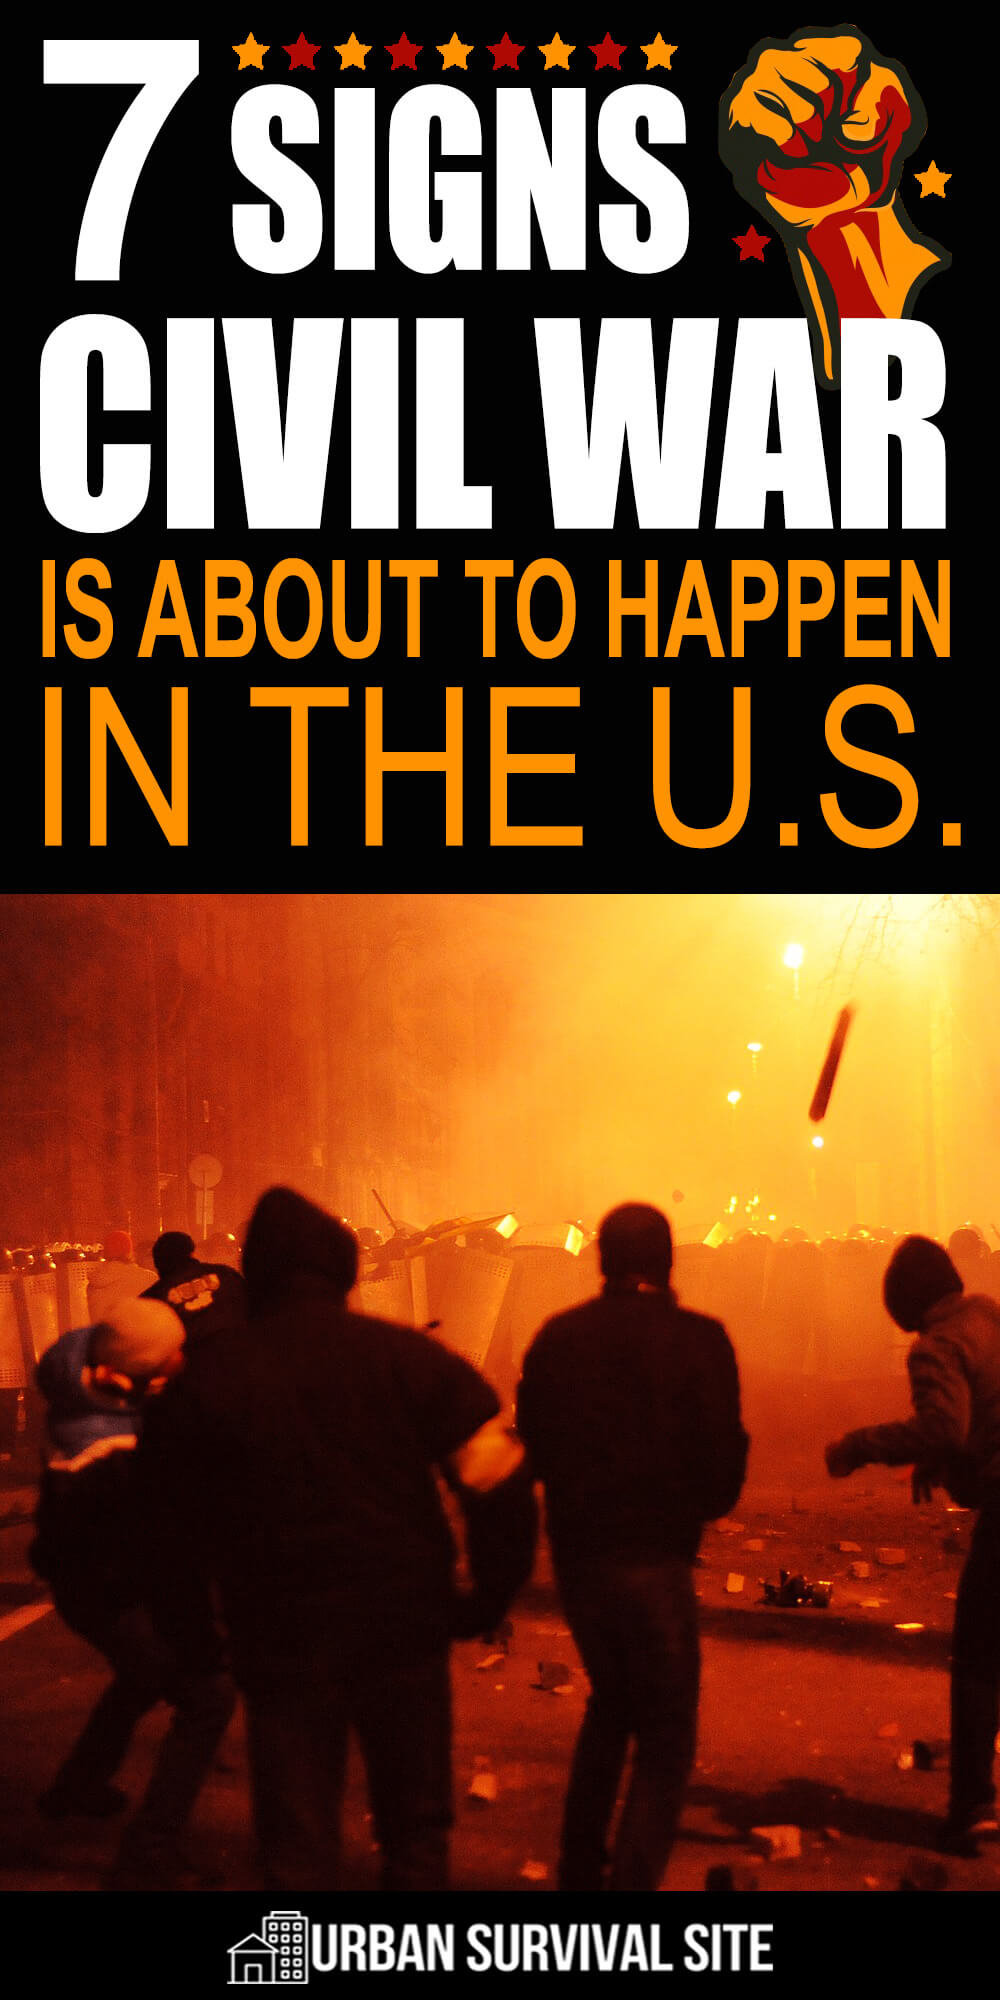 7 Signs Civil War is About to Happen In The U.S.